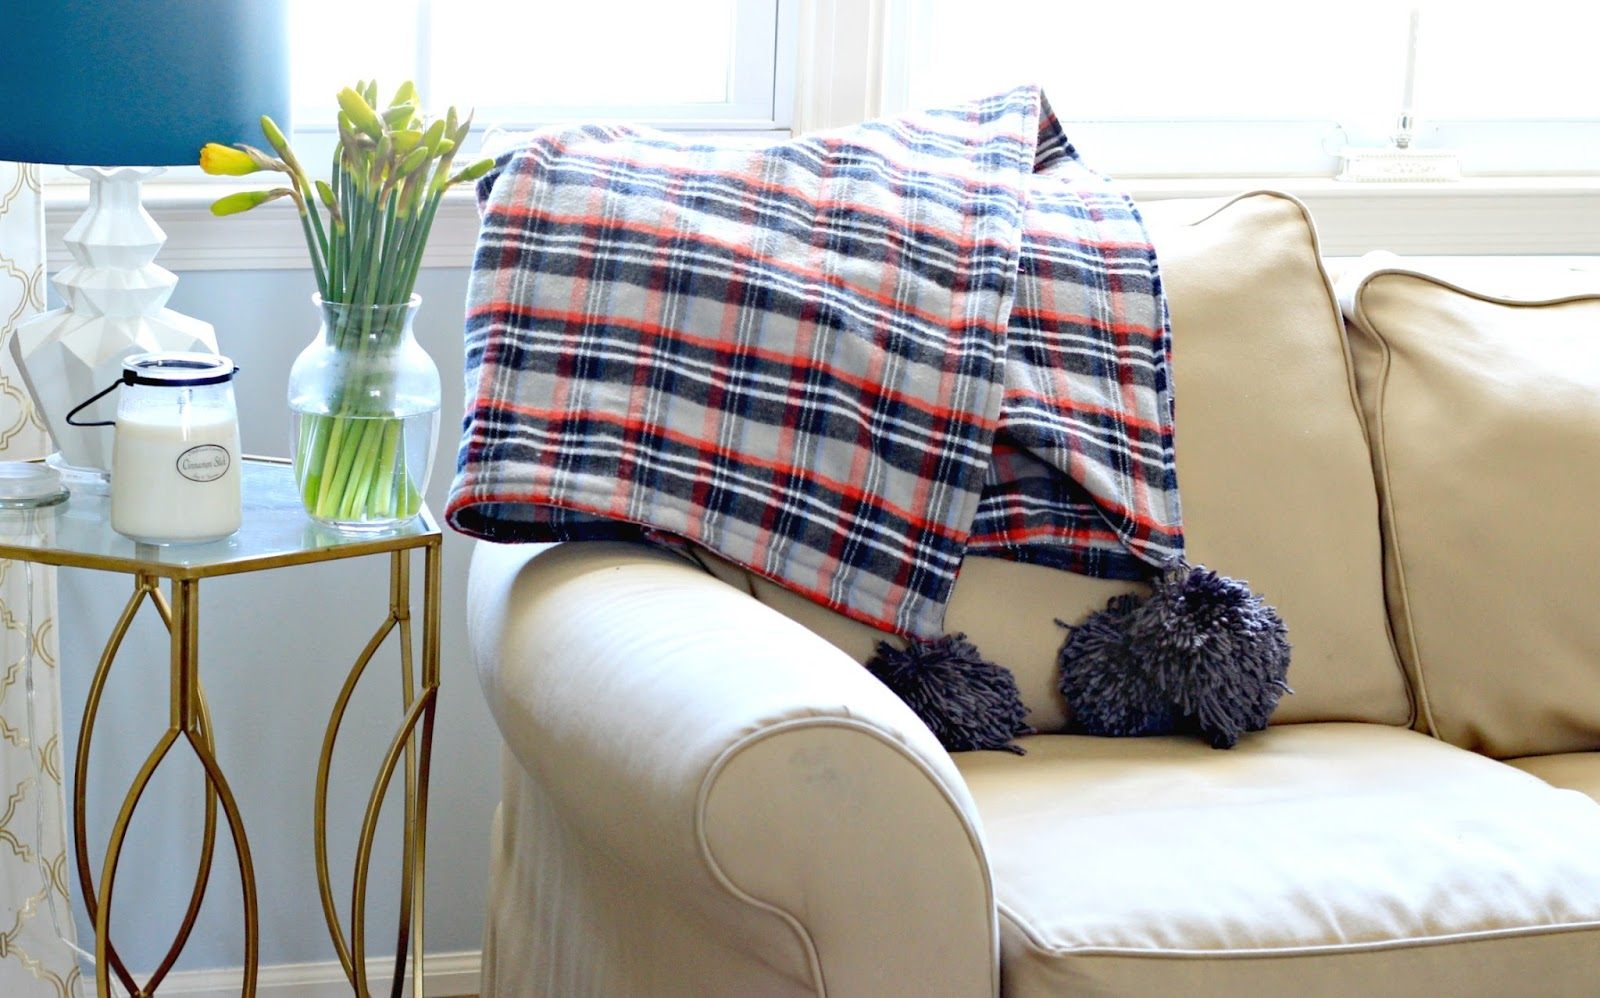 I Recently Fell In Love With A Gray Plaid Flannel And Whipped Up Diy Throw Blanket Weekend